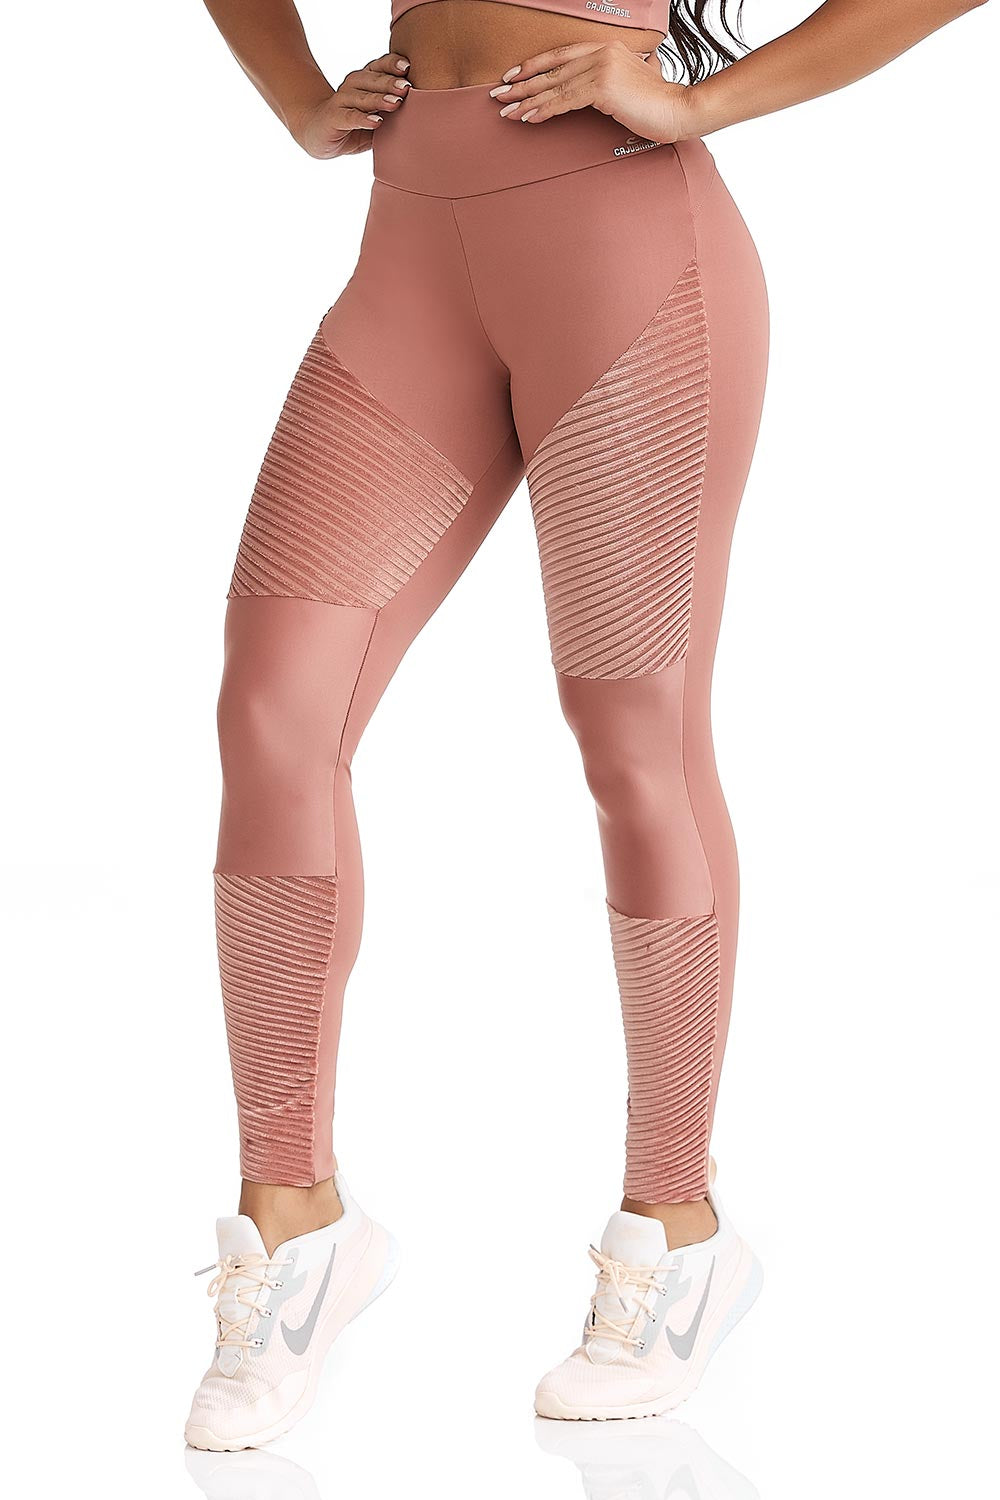 Cajubrasil Legging NZ Magesty-11579.149